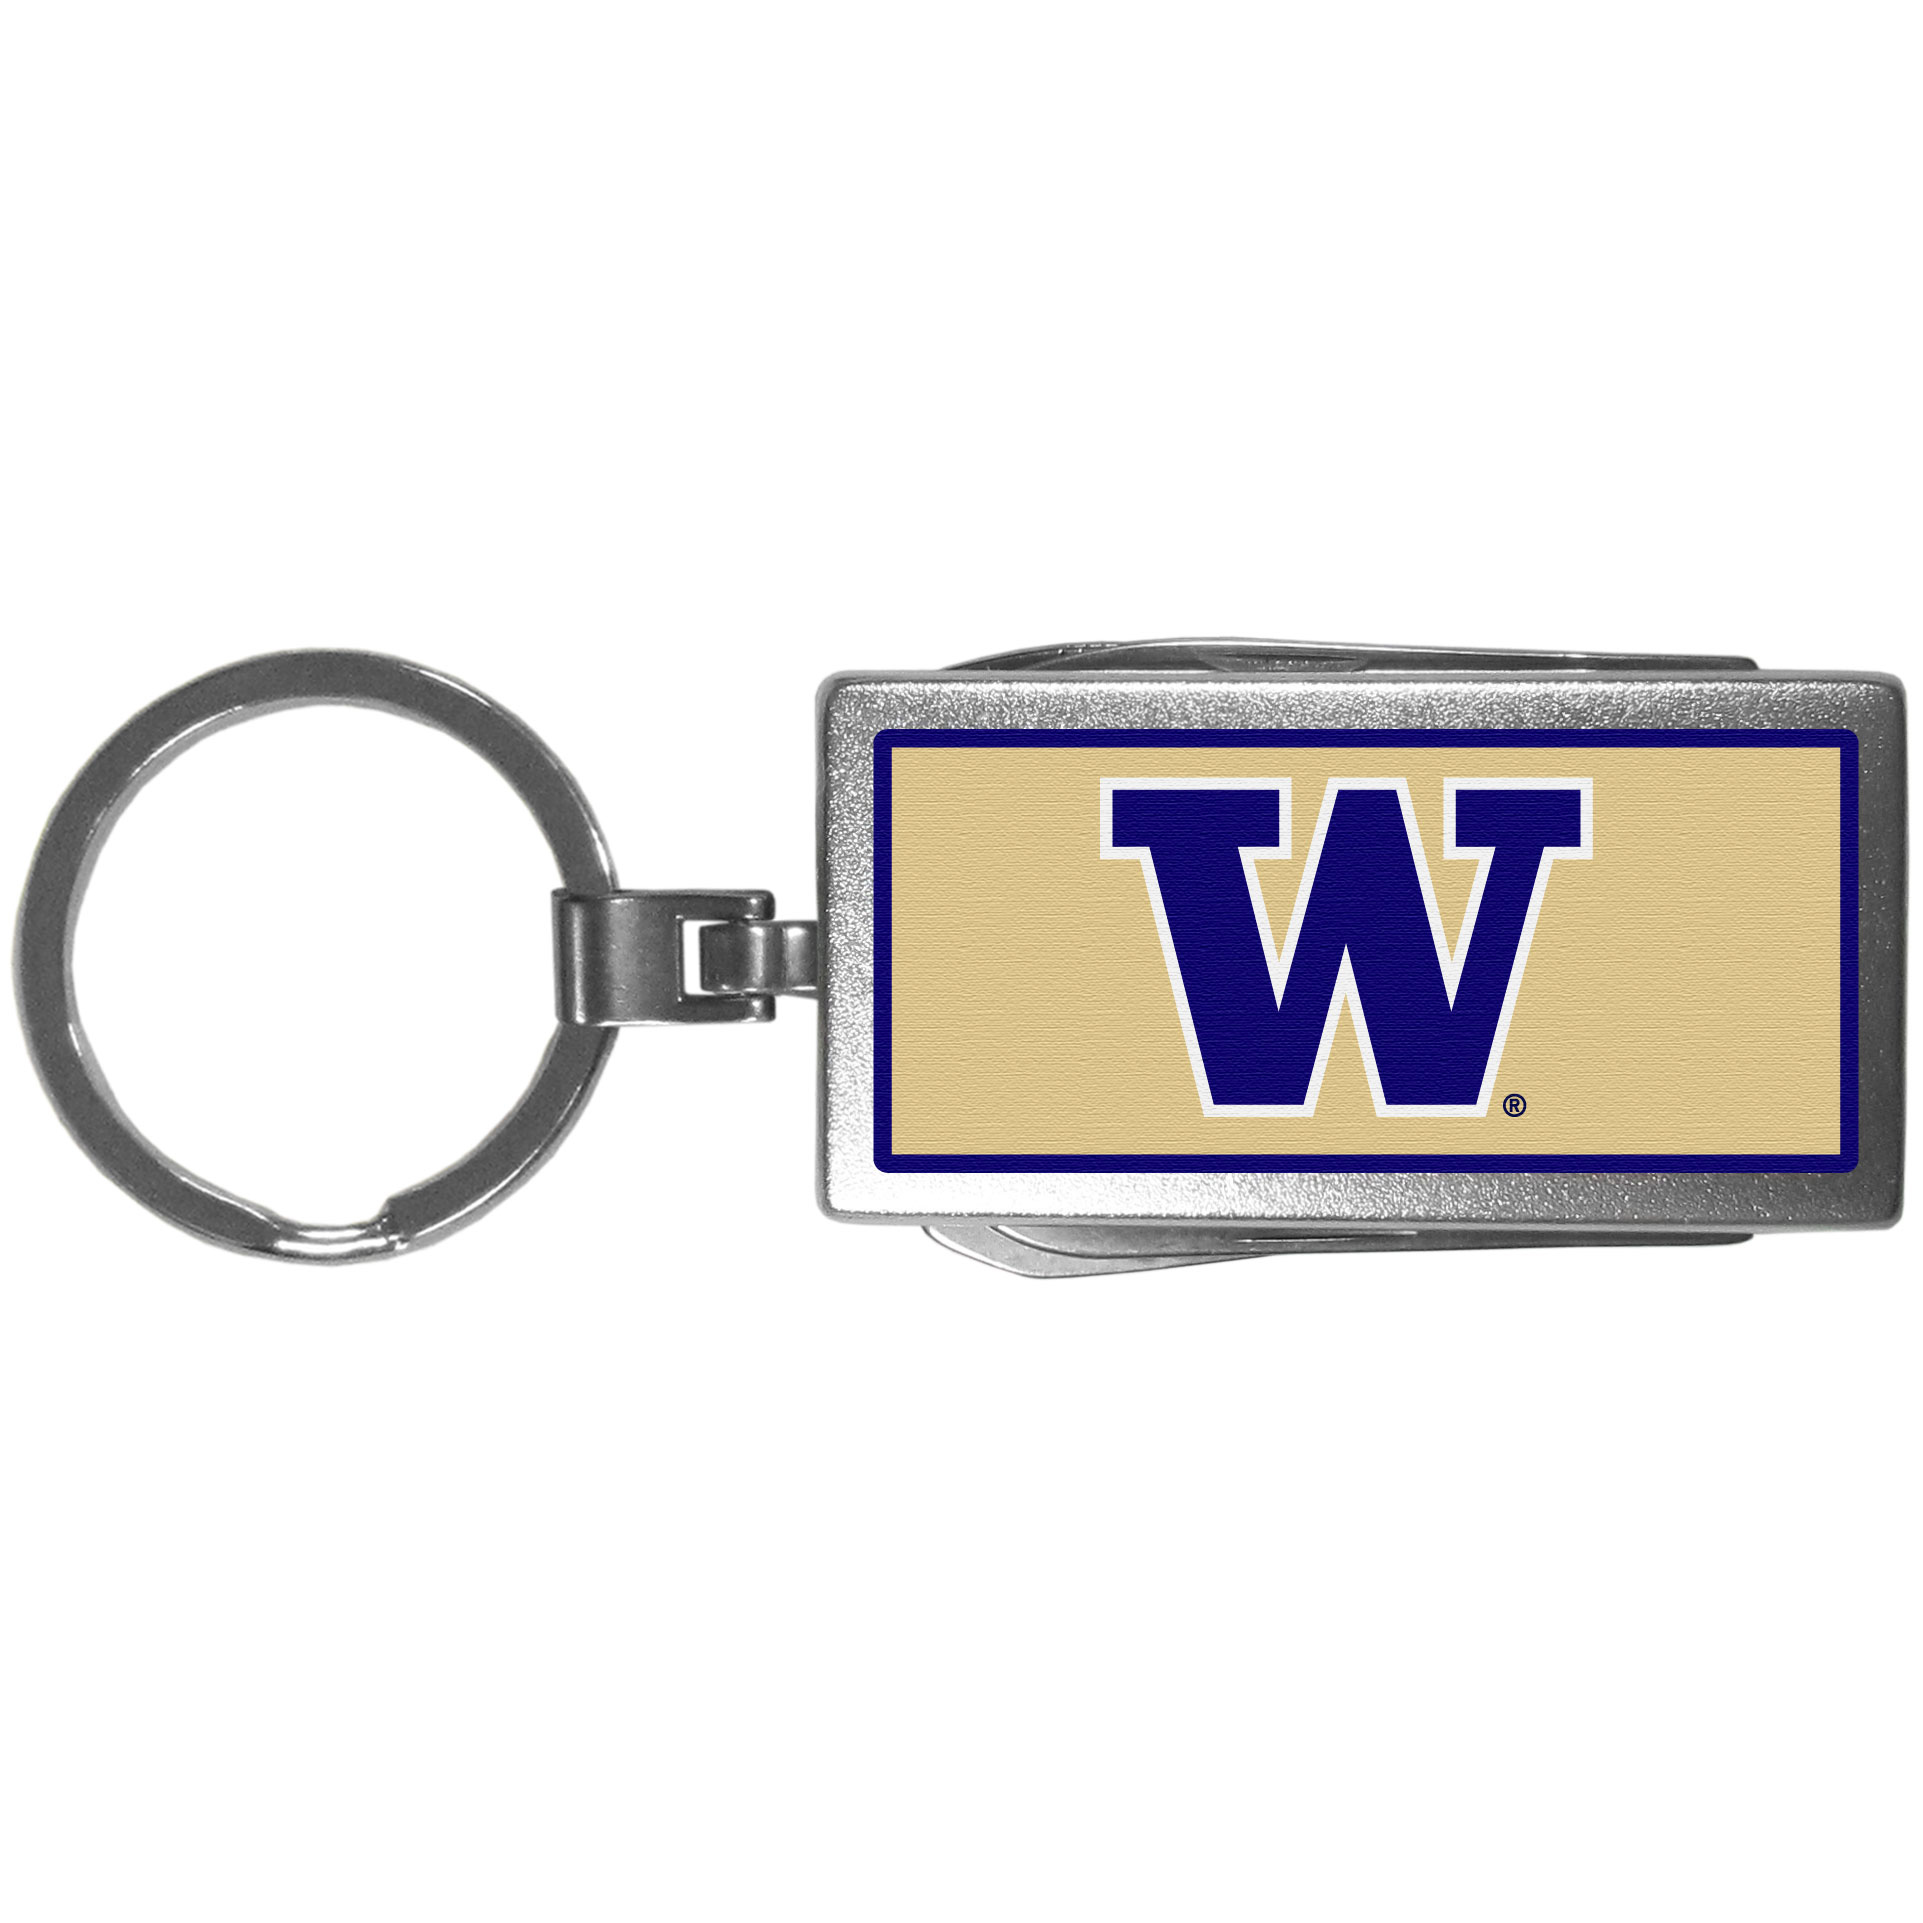 Washington Huskies Multi-tool Key Chain, Logo - Be the hero at the tailgate, camping, or on a Friday night with your Washington Huskies Multi-Tool Keychain which comes complete with bottle opener, scissors, knife, nail file and screw driver. Be it opening a package or a beverage Siskiyou's Multi-Tool Keychain goes wherever your keys do. The keychain hangs at 4 inches long when closed.